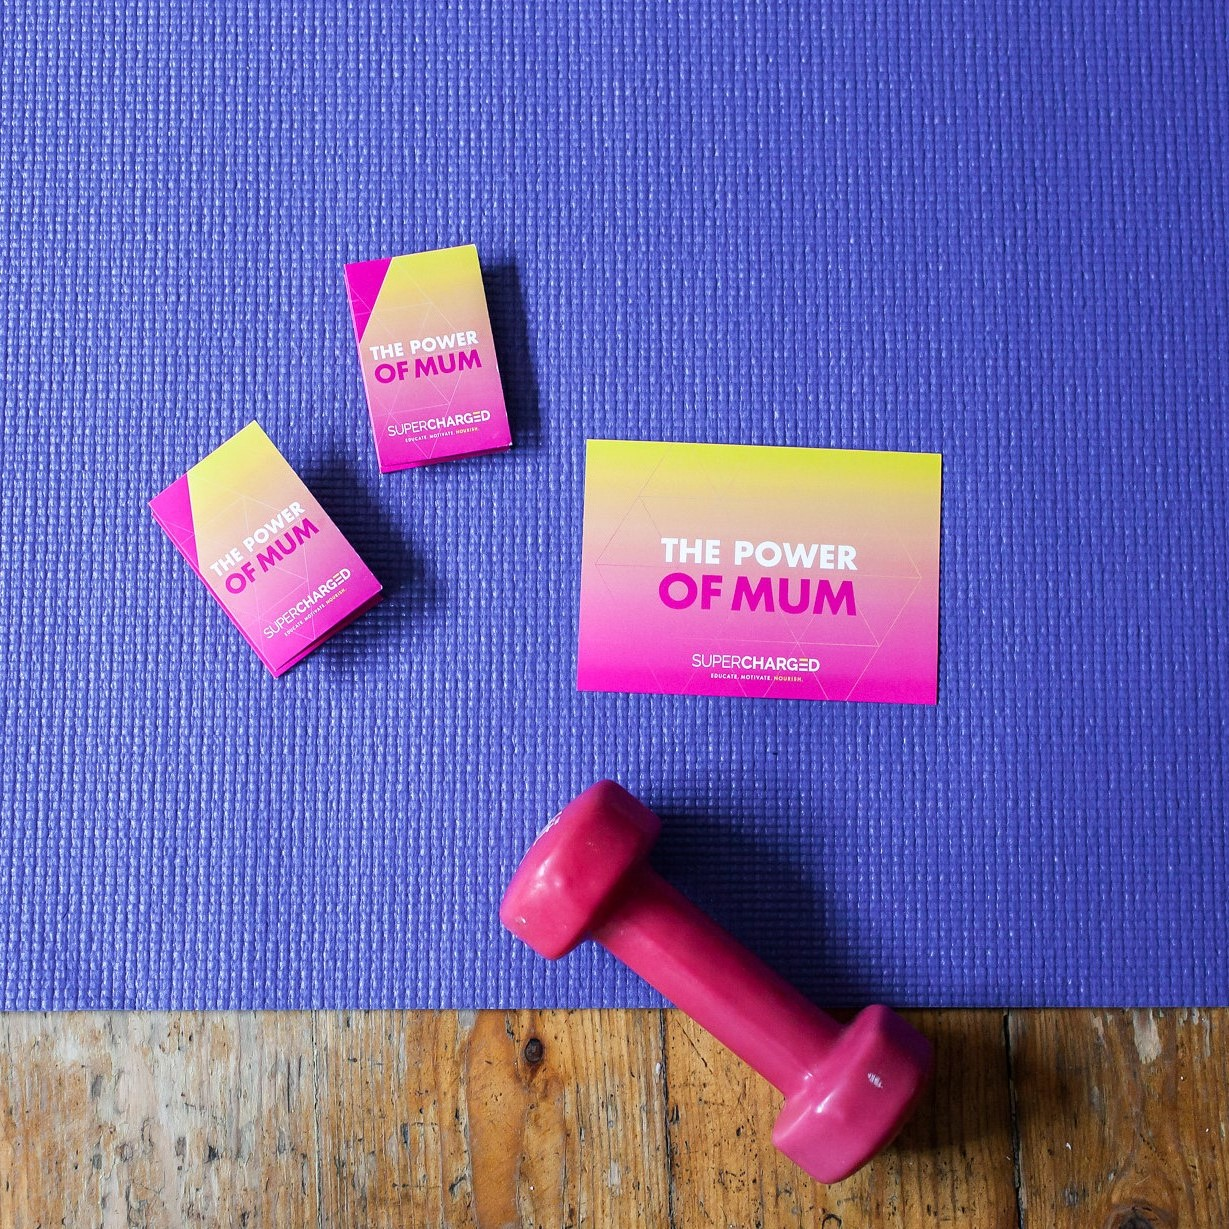 My exercise classes combine pilates with strength training and functional movement to create the best workout for busy mums.